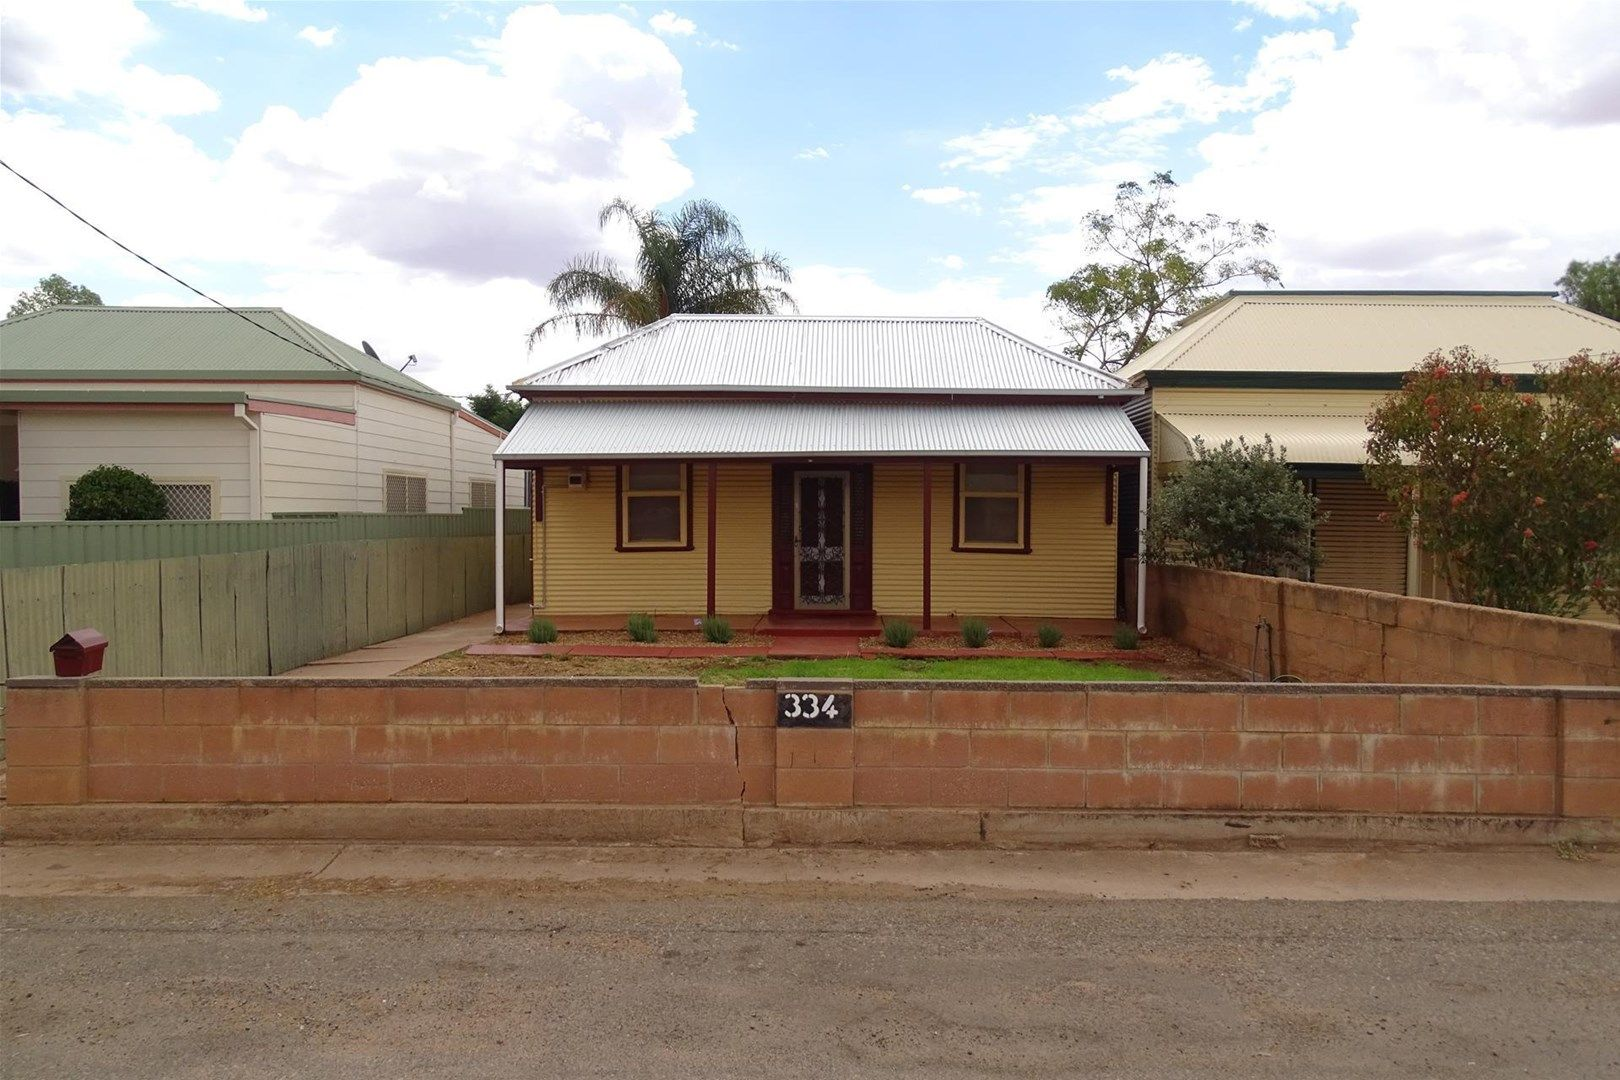 334 Thomas Lane, Broken Hill NSW 2880, Image 0